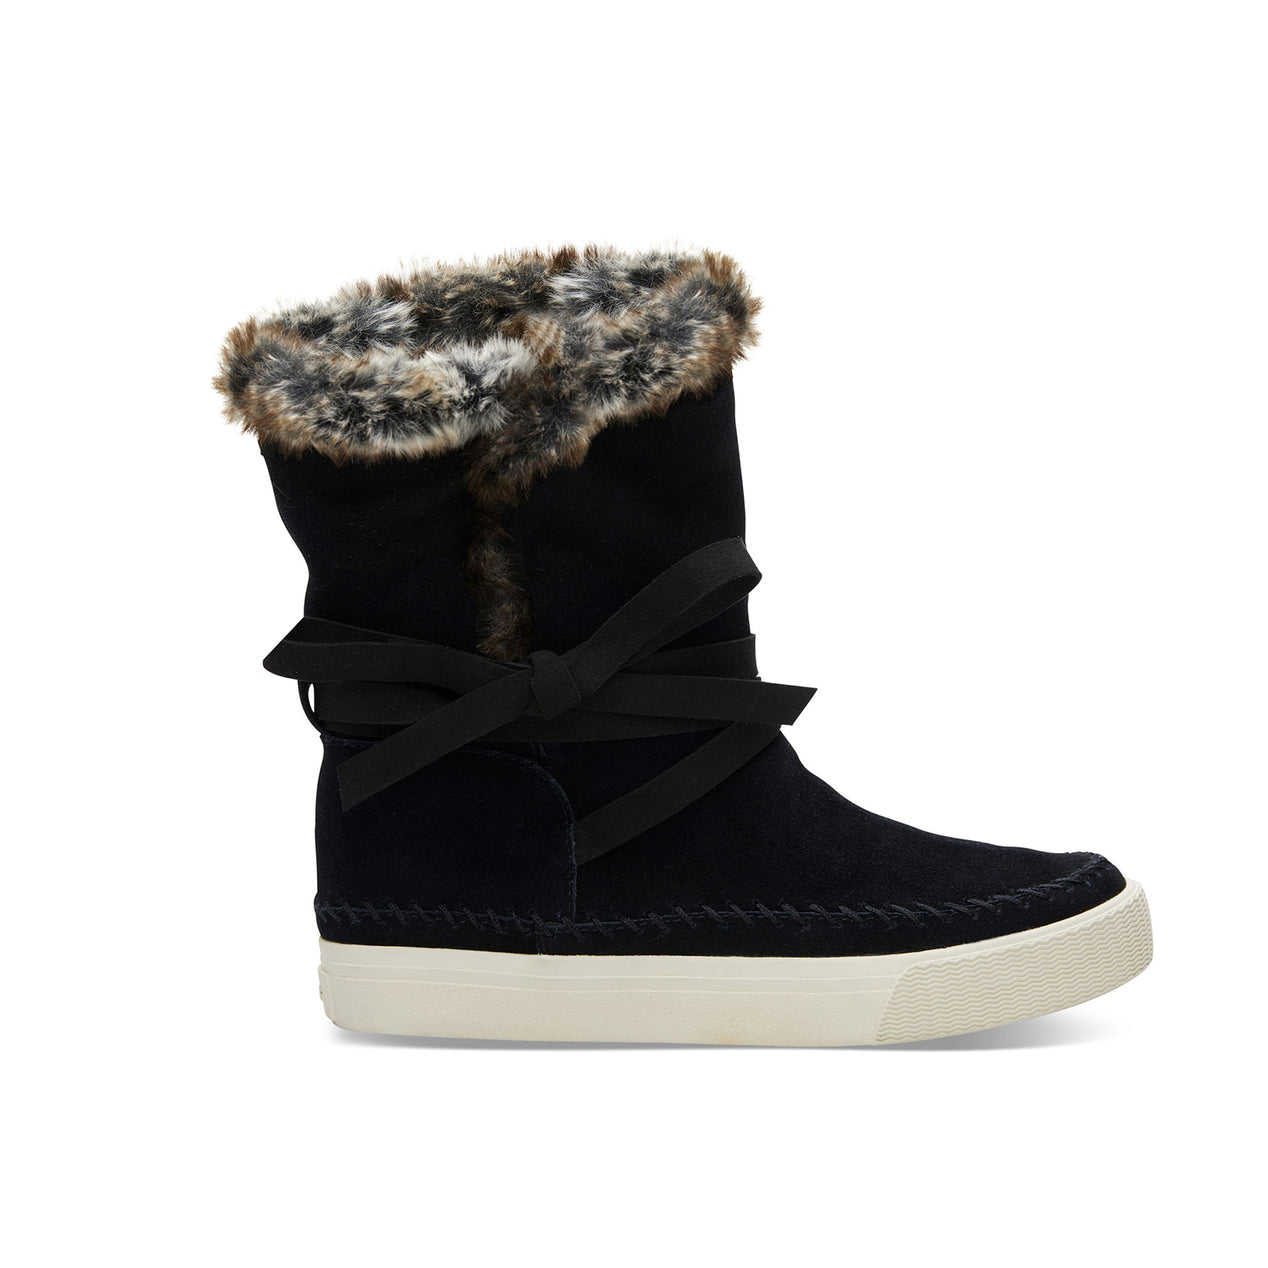 36c3866d02d TOMS Women's Vista Waterproof Suede Faux Fur Boots